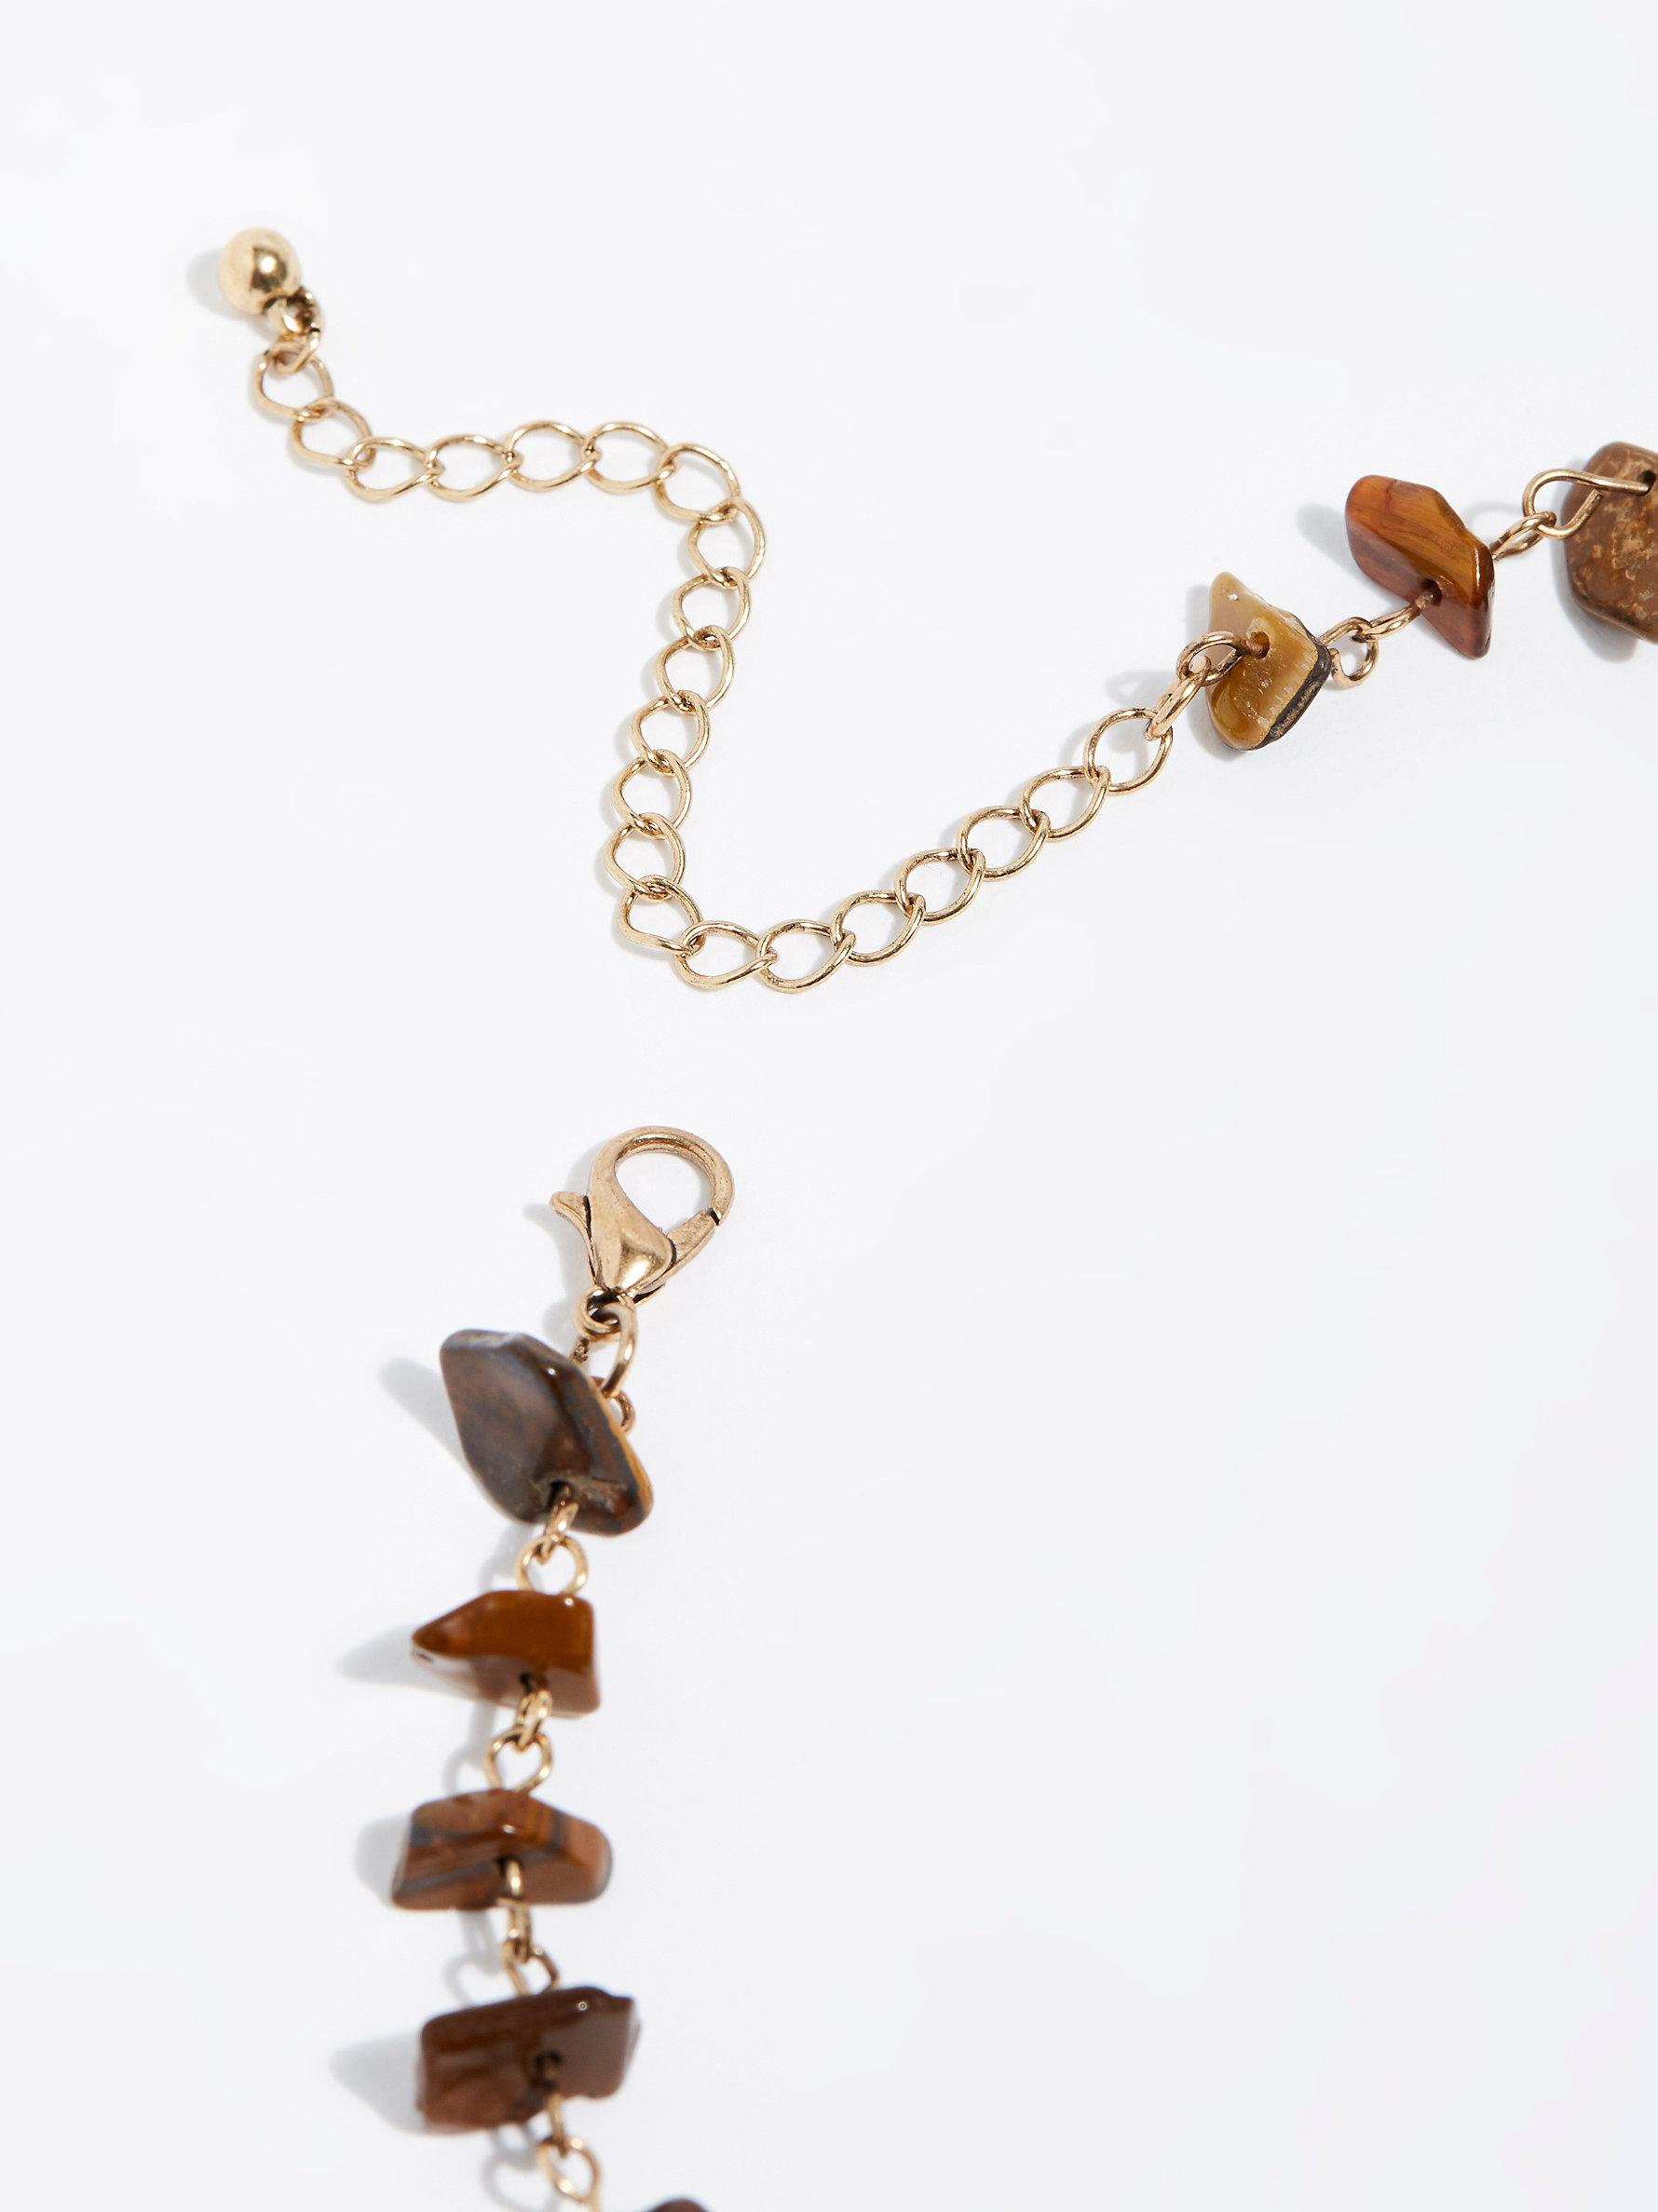 rta calcite pyrite raw necklace stone larsson m